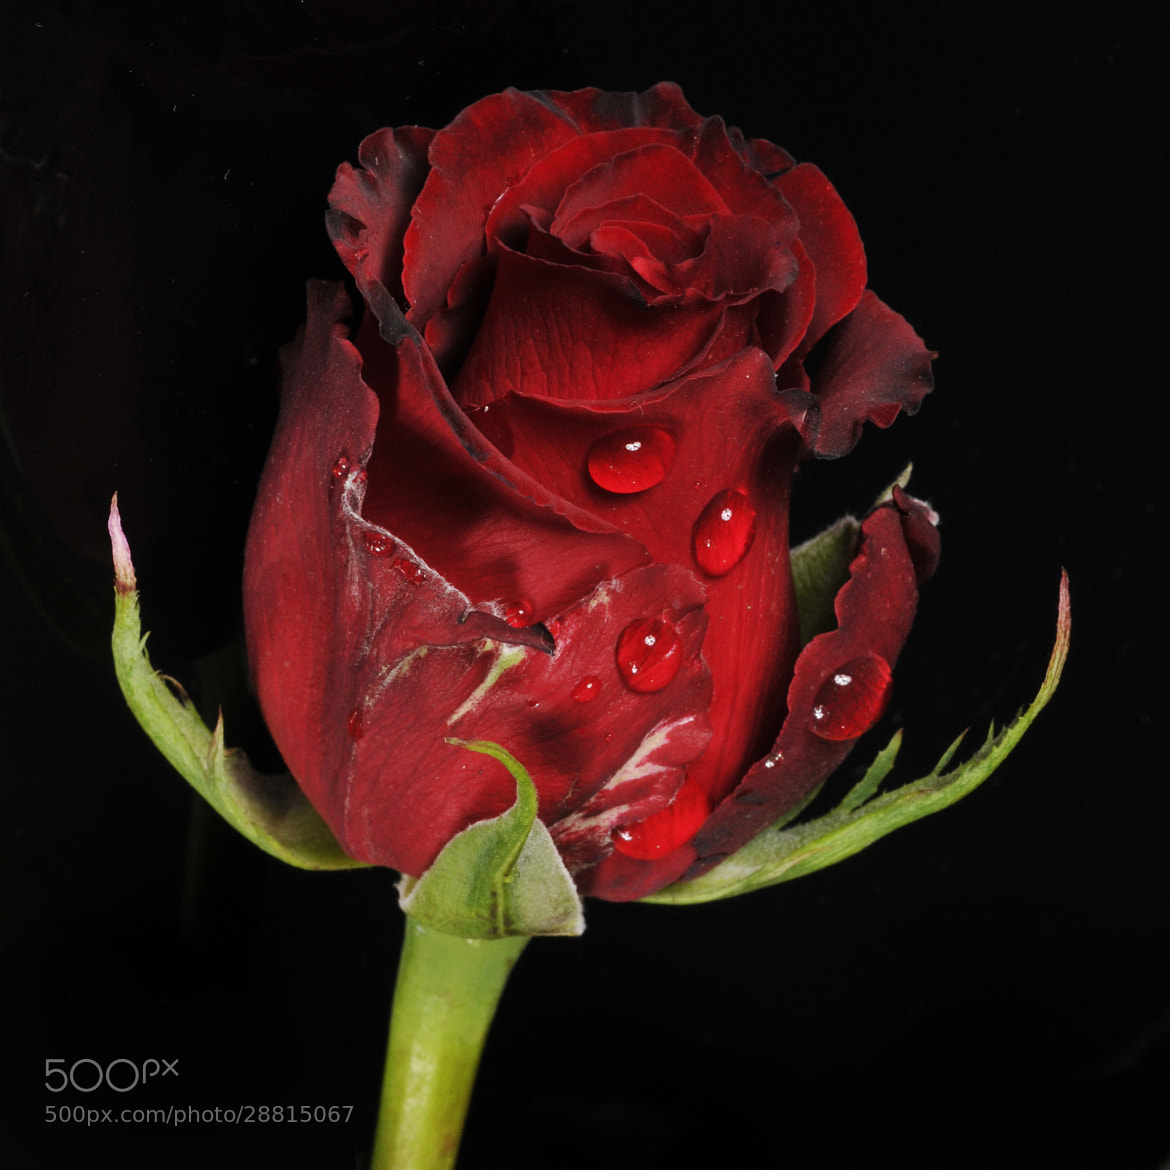 Photograph Red rose in dark tone by Cristobal Garciaferro Rubio on 500px